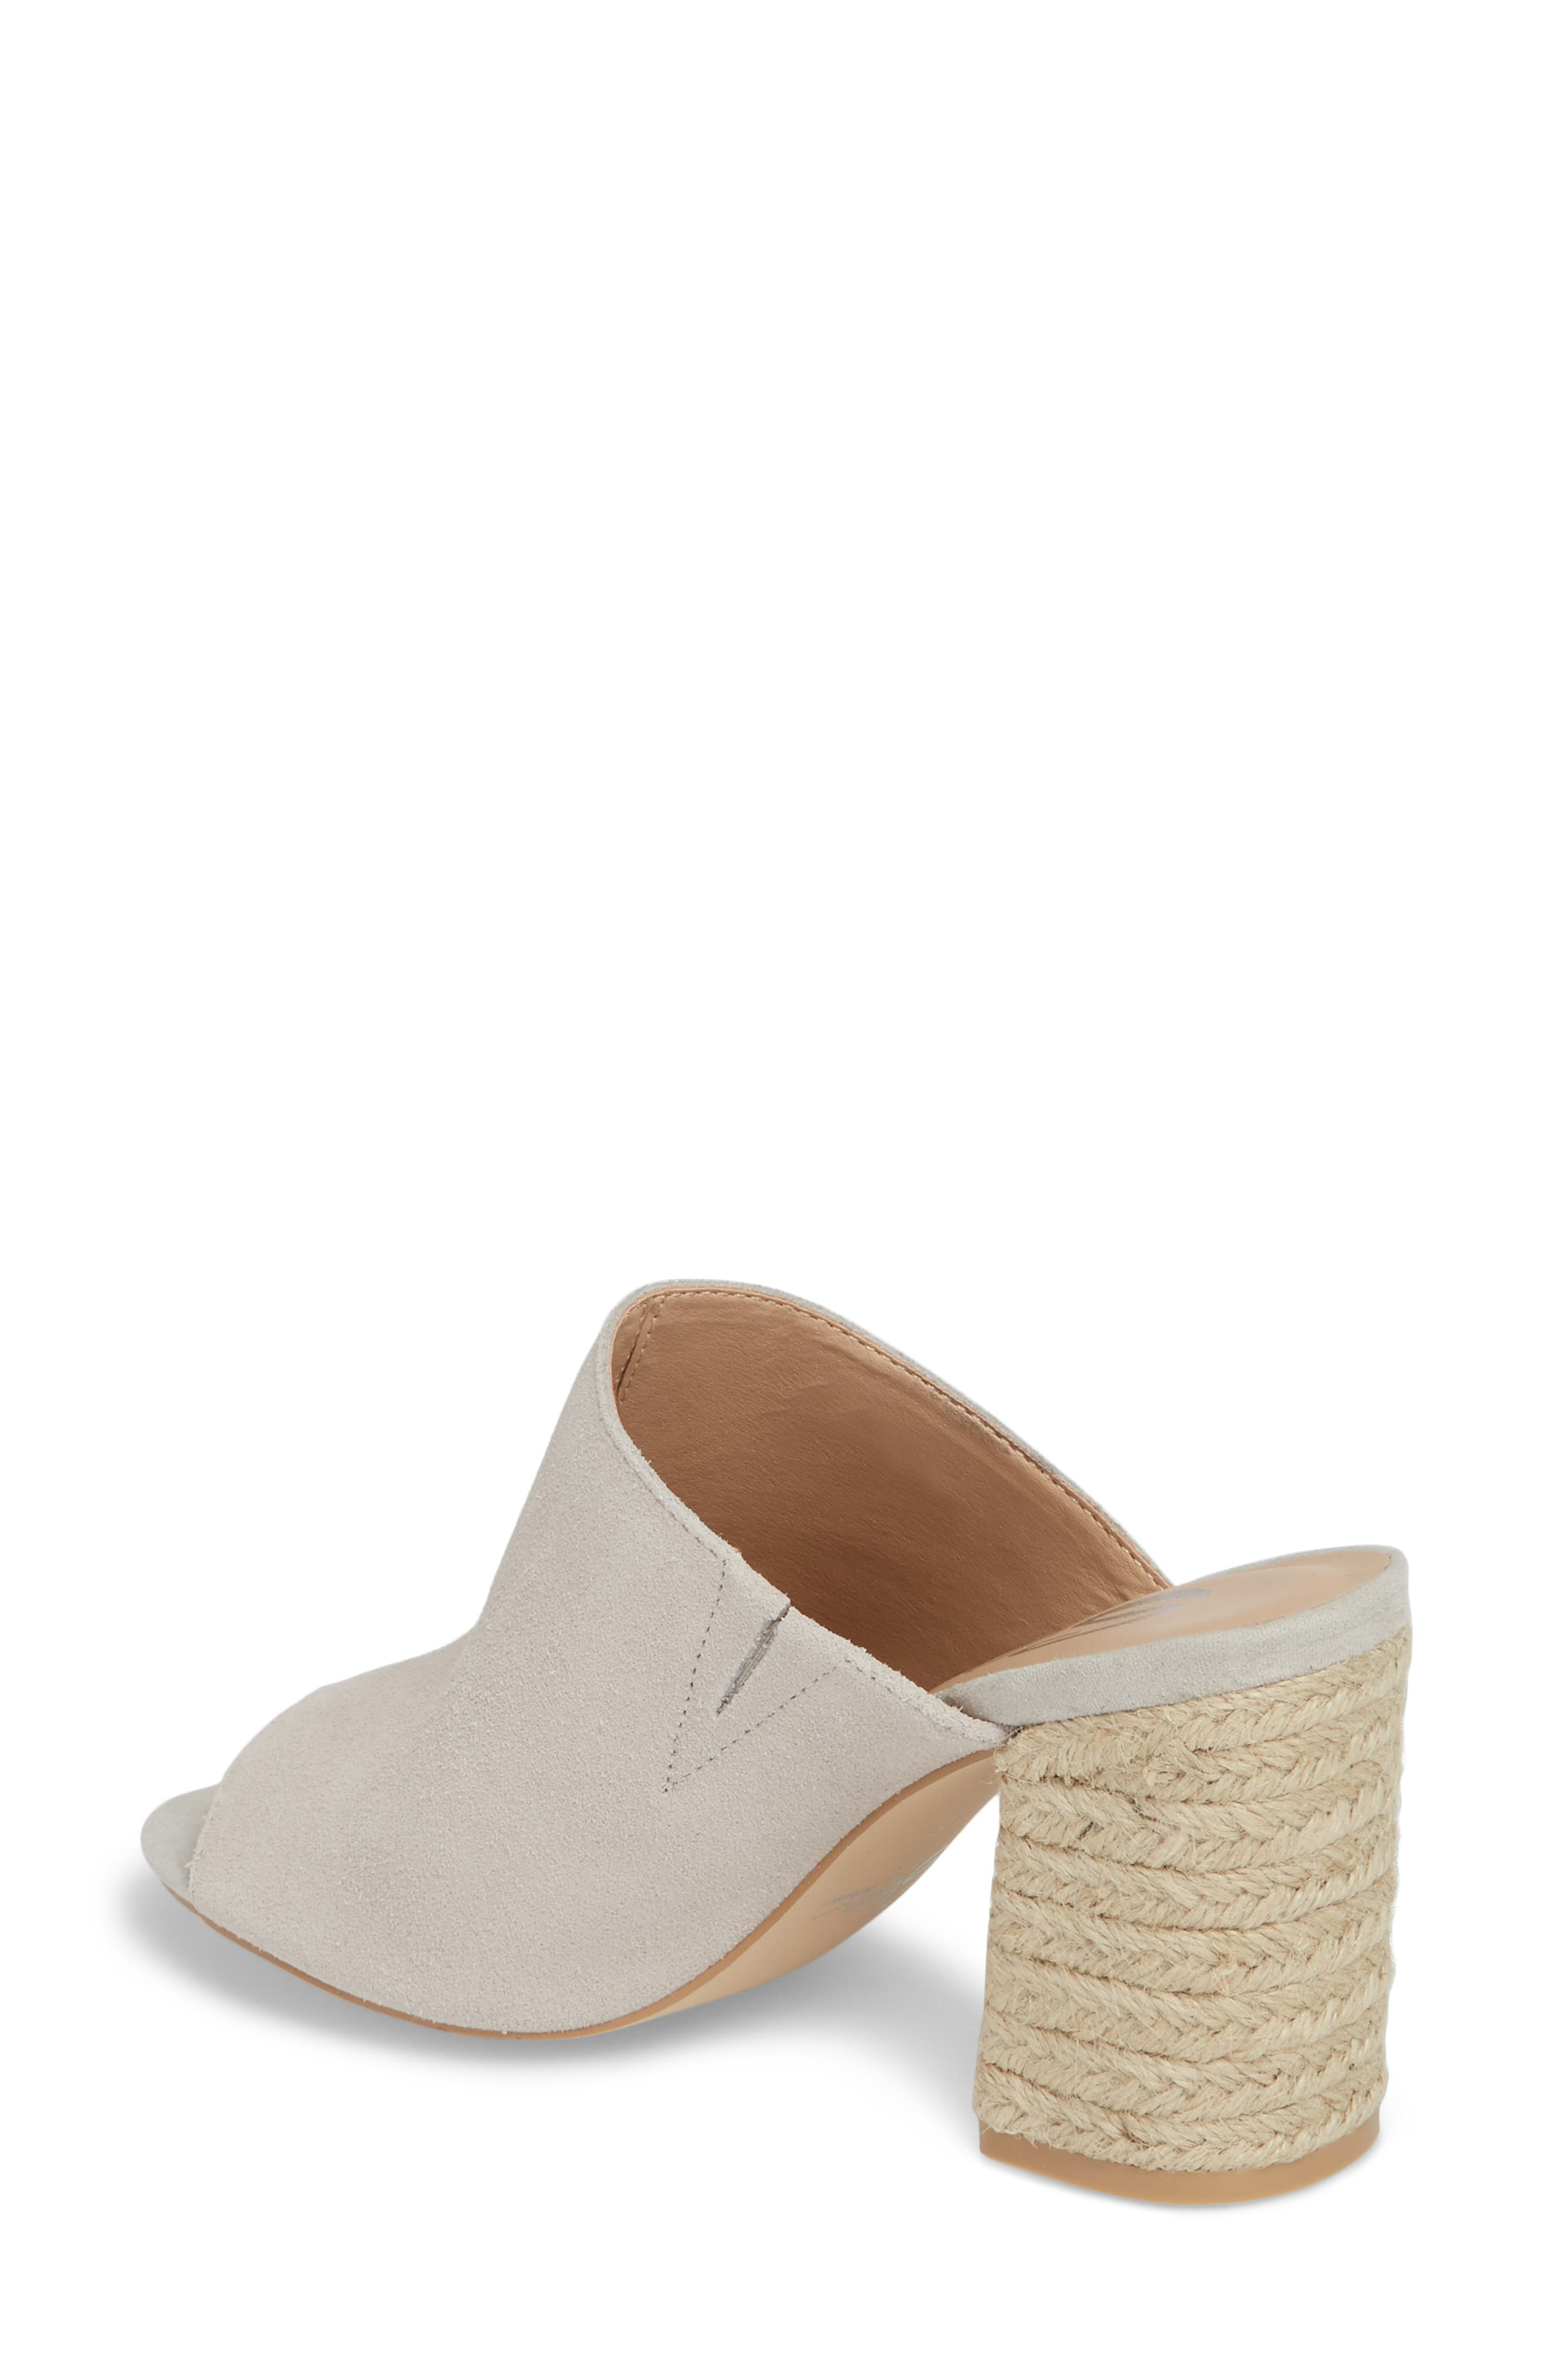 Helena Sandal,                             Alternate thumbnail 2, color,                             Ice Suede/ Leather